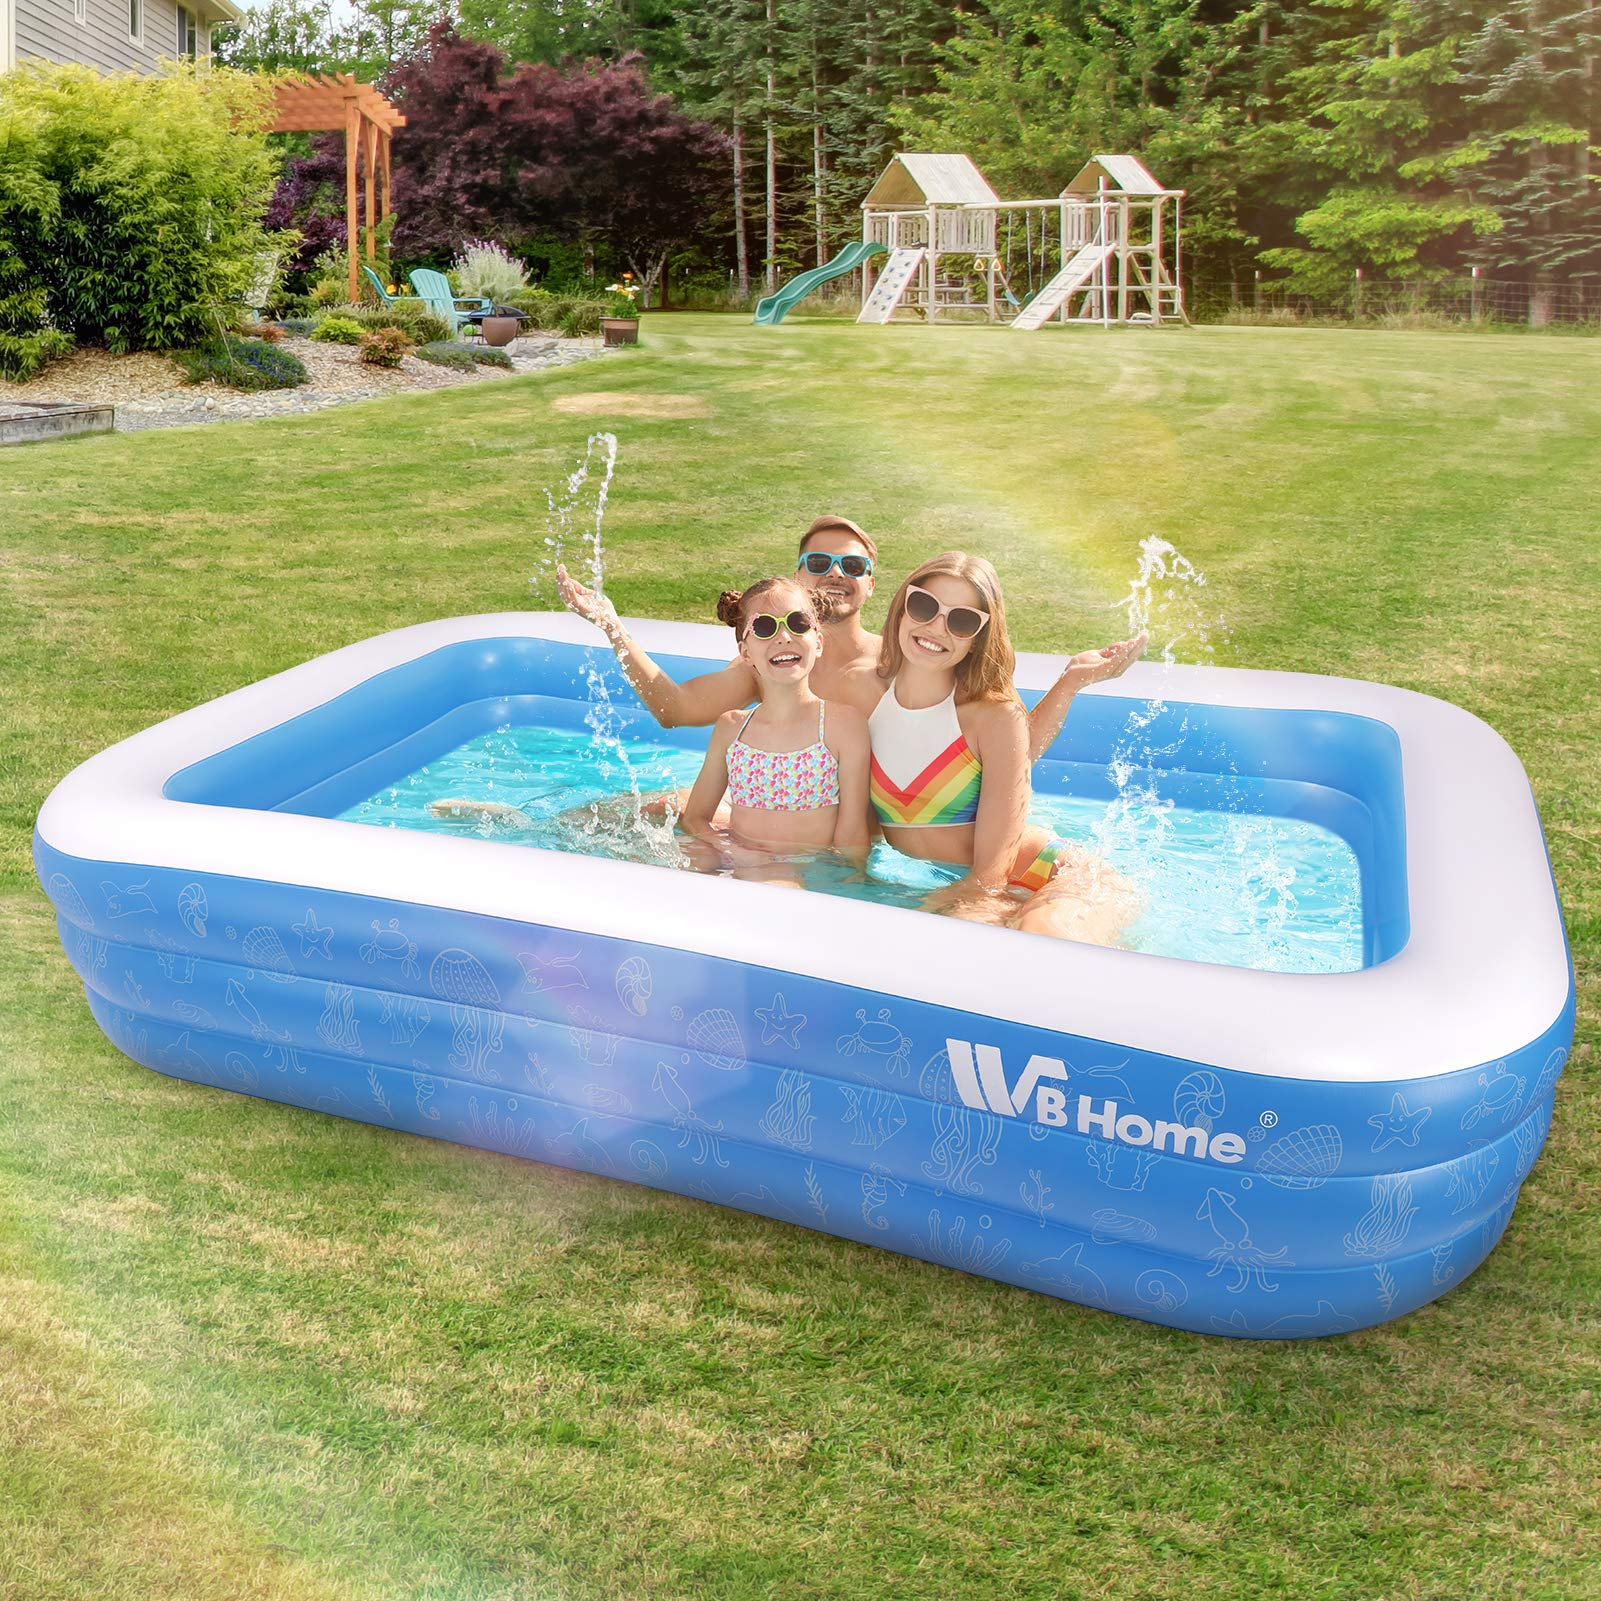 WBHome Family Inflatable Swimming Pool 118″ X 70″ X 22″ Large Inflatable